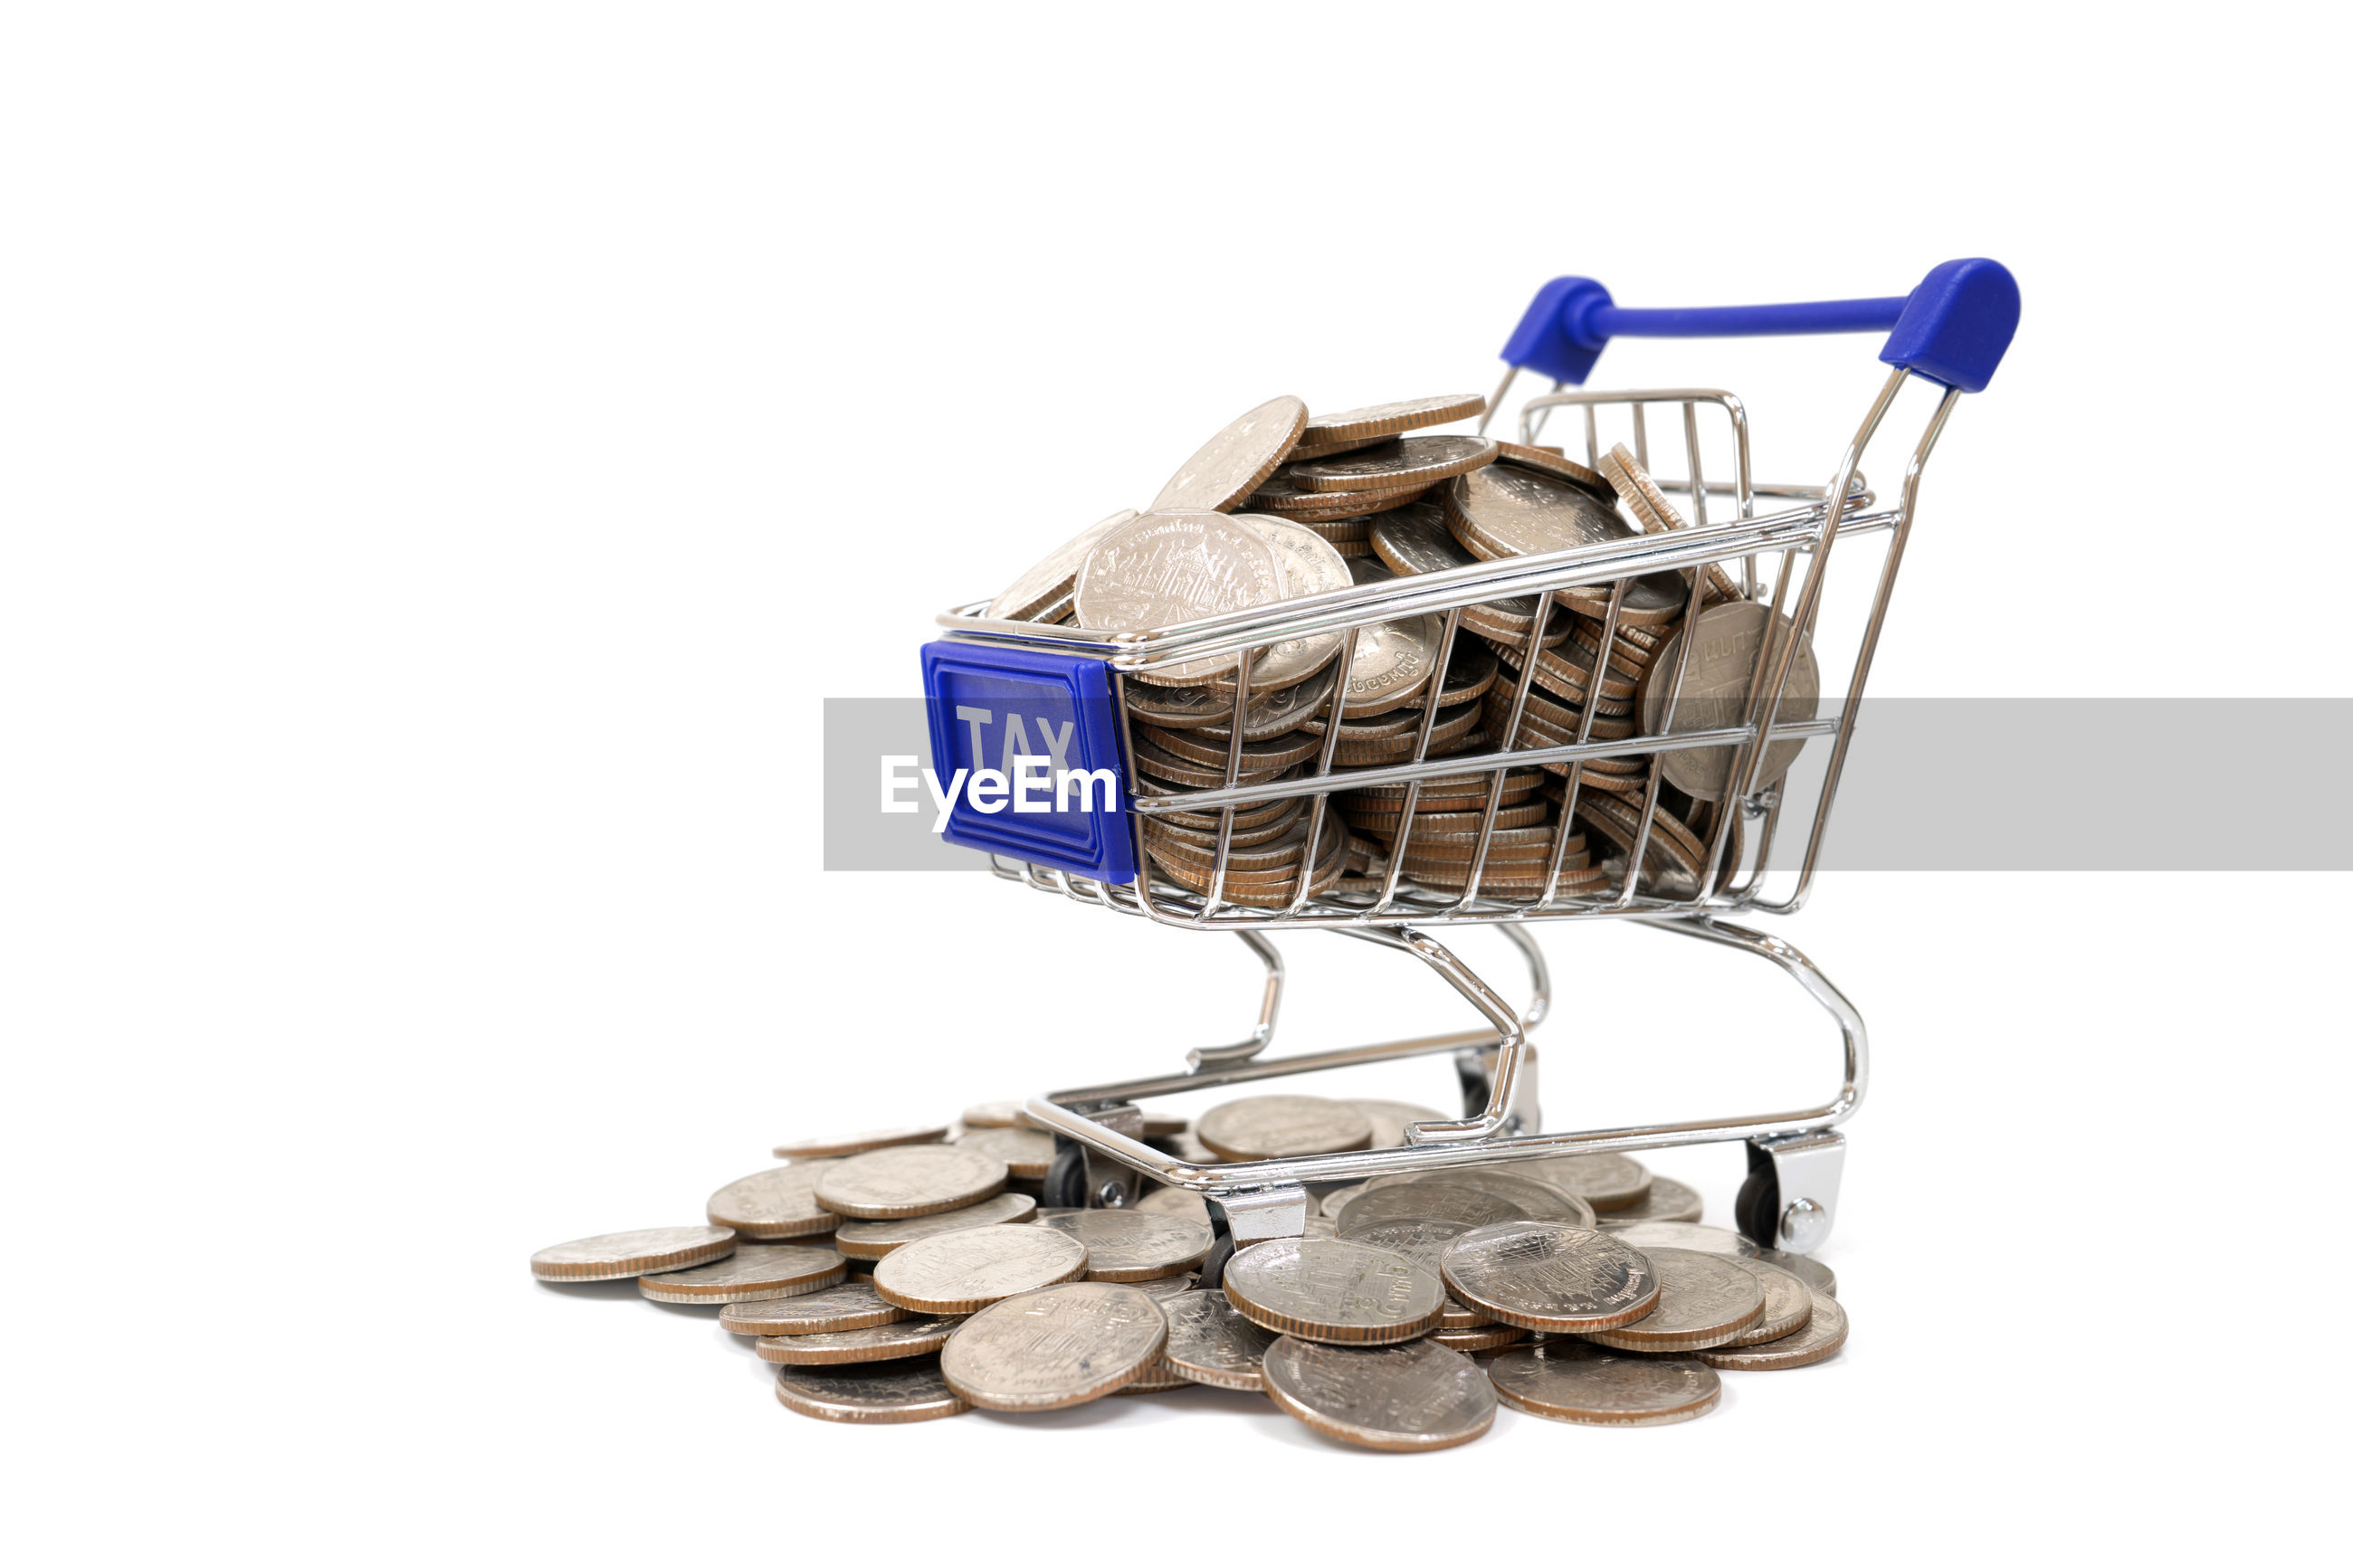 Toy shopping cart with coins and tax text on white background